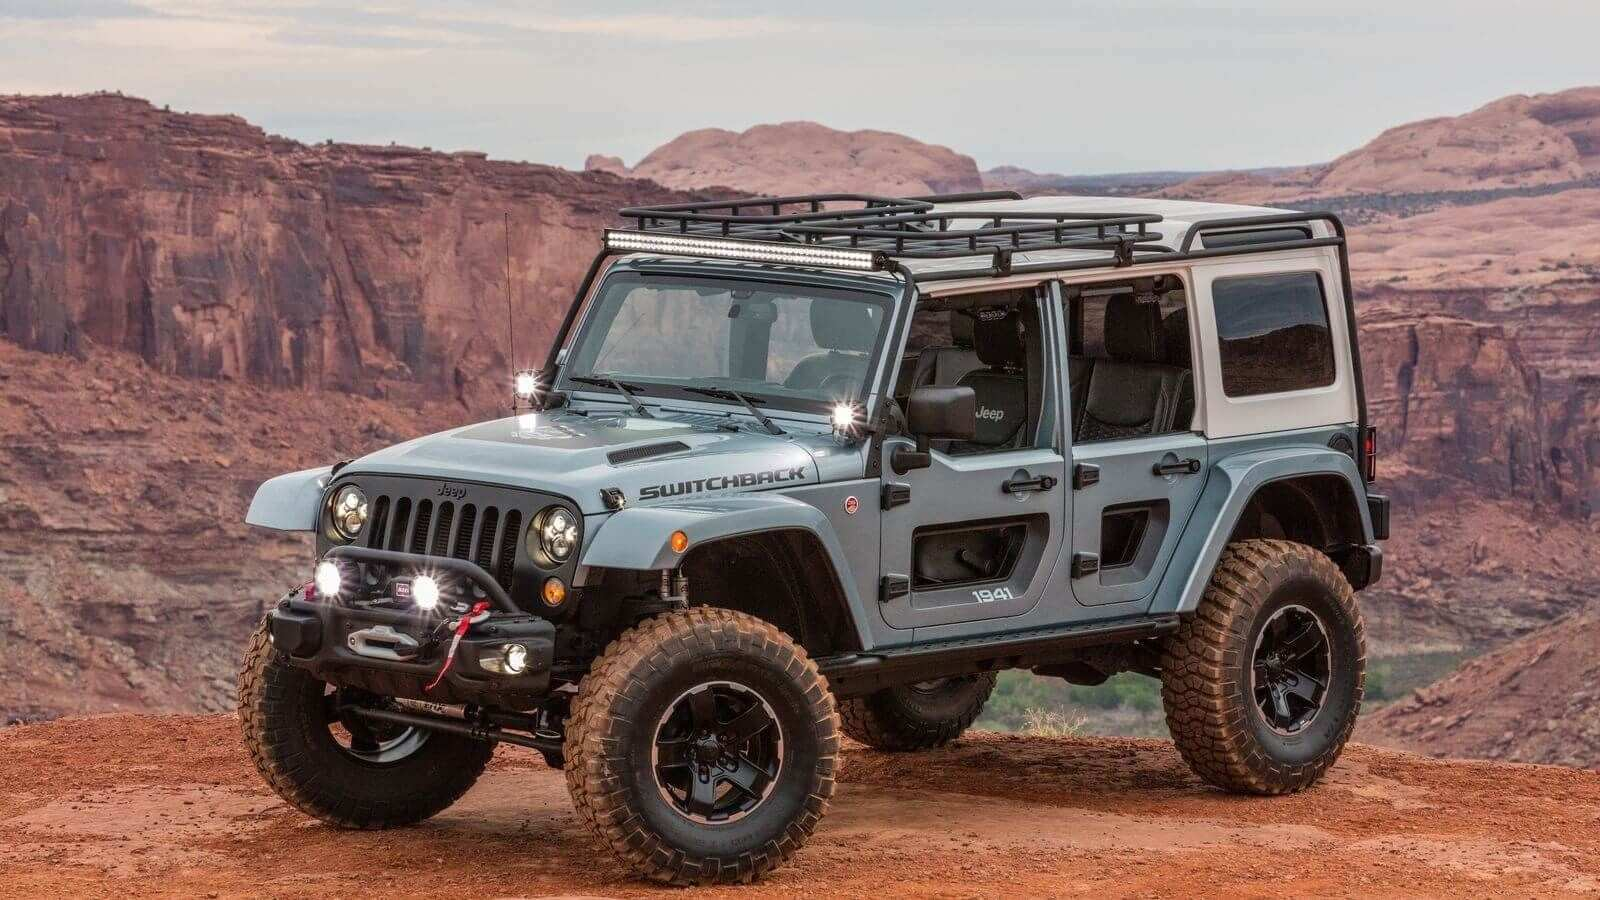 74 All New 2020 Jeep Diesel Picture for 2020 Jeep Diesel